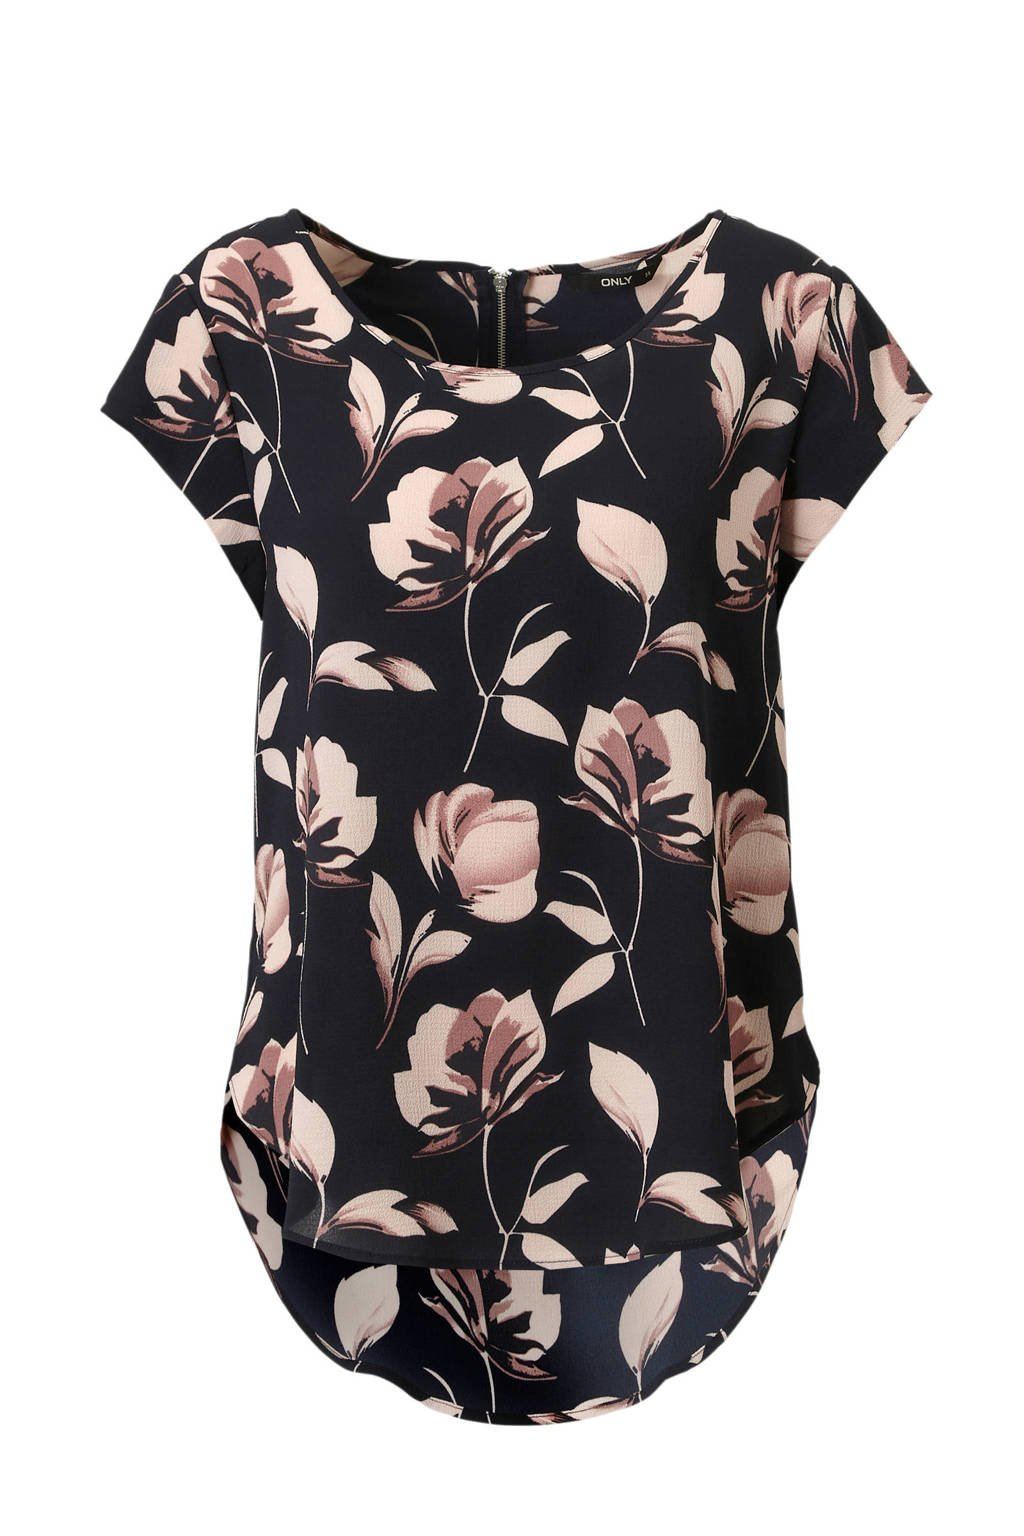 ONLY top met all over bloemen print, Donkerblauw/roze